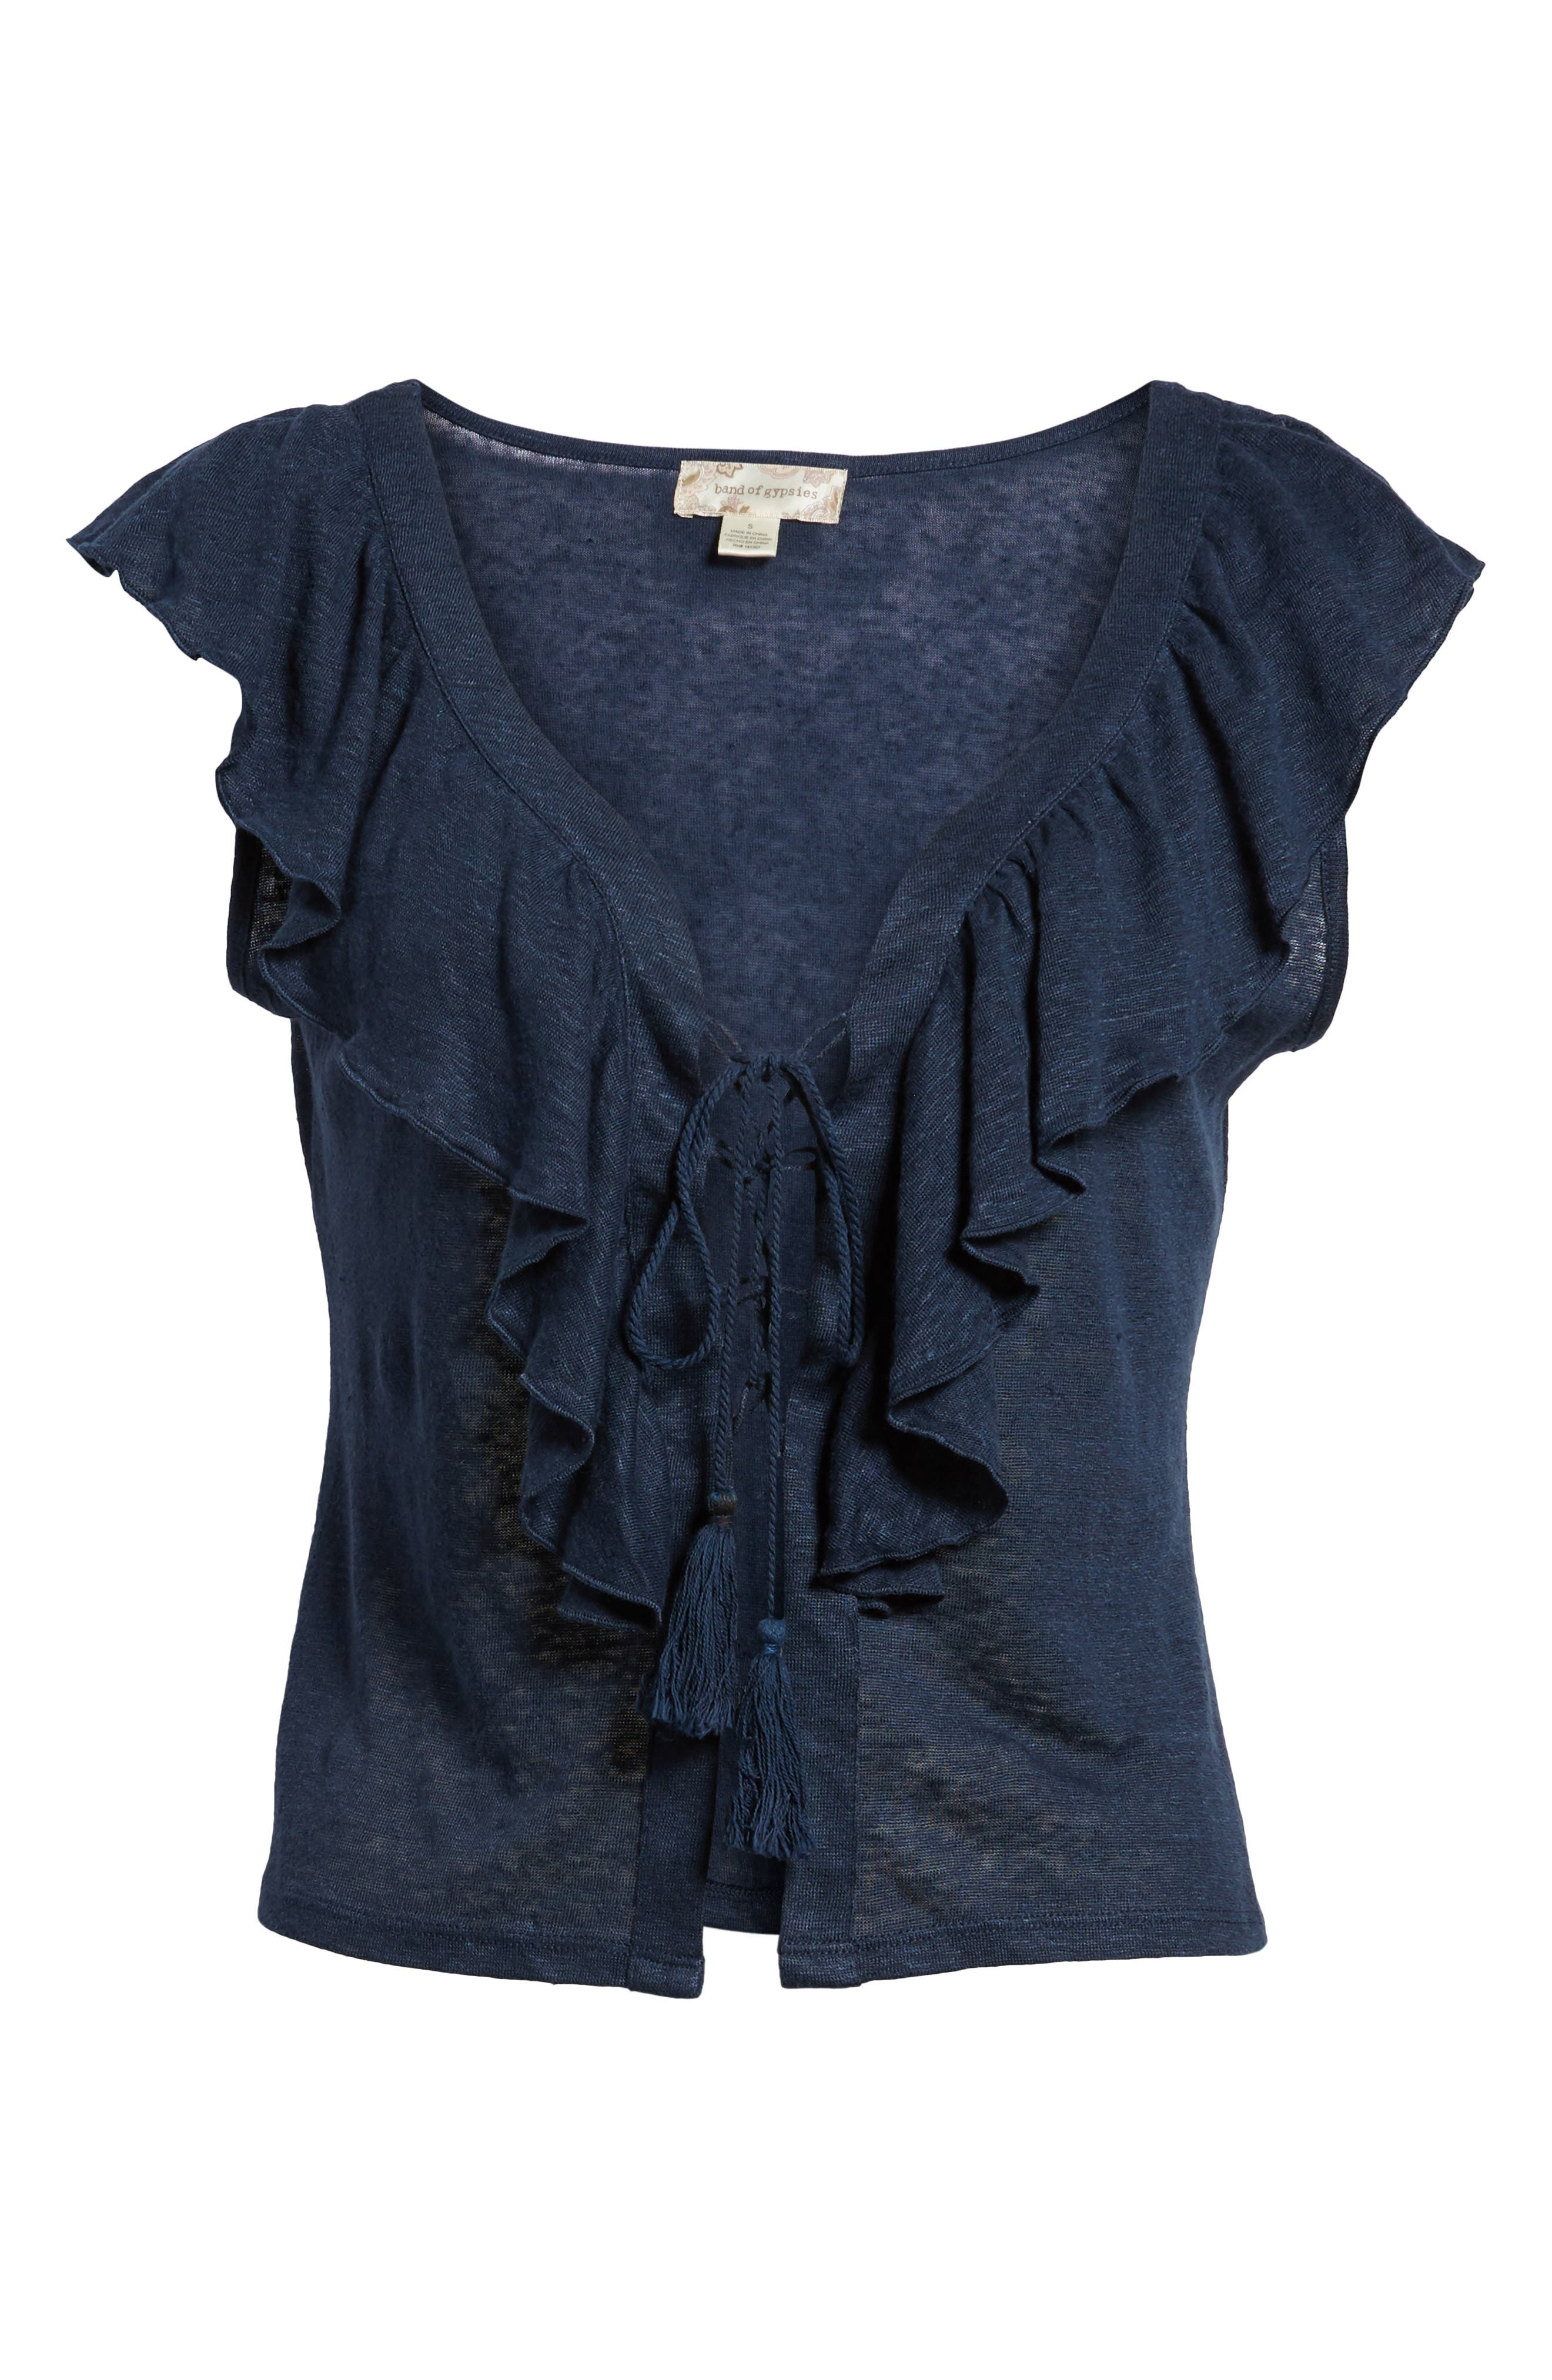 Ruffle Trim Lace Up Linen Top,                             Alternate thumbnail 6, color,                             Navy